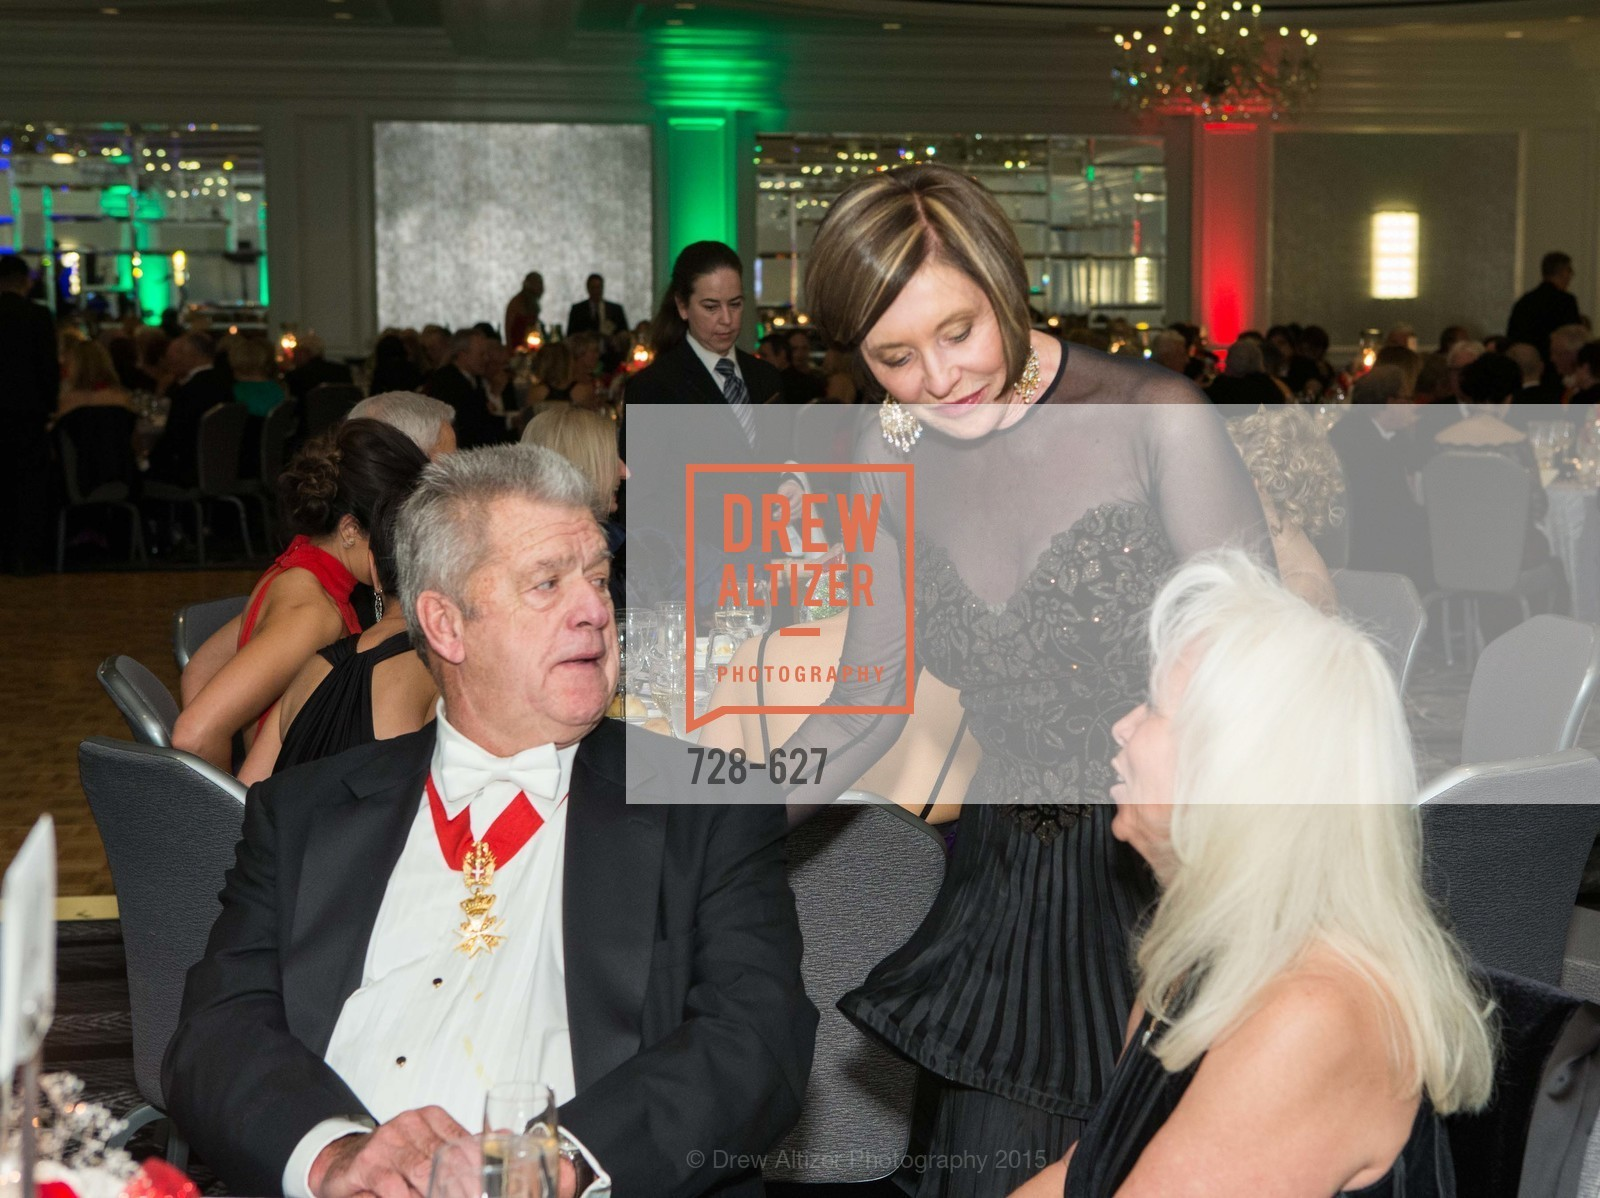 Extras, Sovereign Order Of St John of Jerusalem Knights Hospitaller Gala, December 5th, 2015, Photo,Drew Altizer, Drew Altizer Photography, full-service agency, private events, San Francisco photographer, photographer california